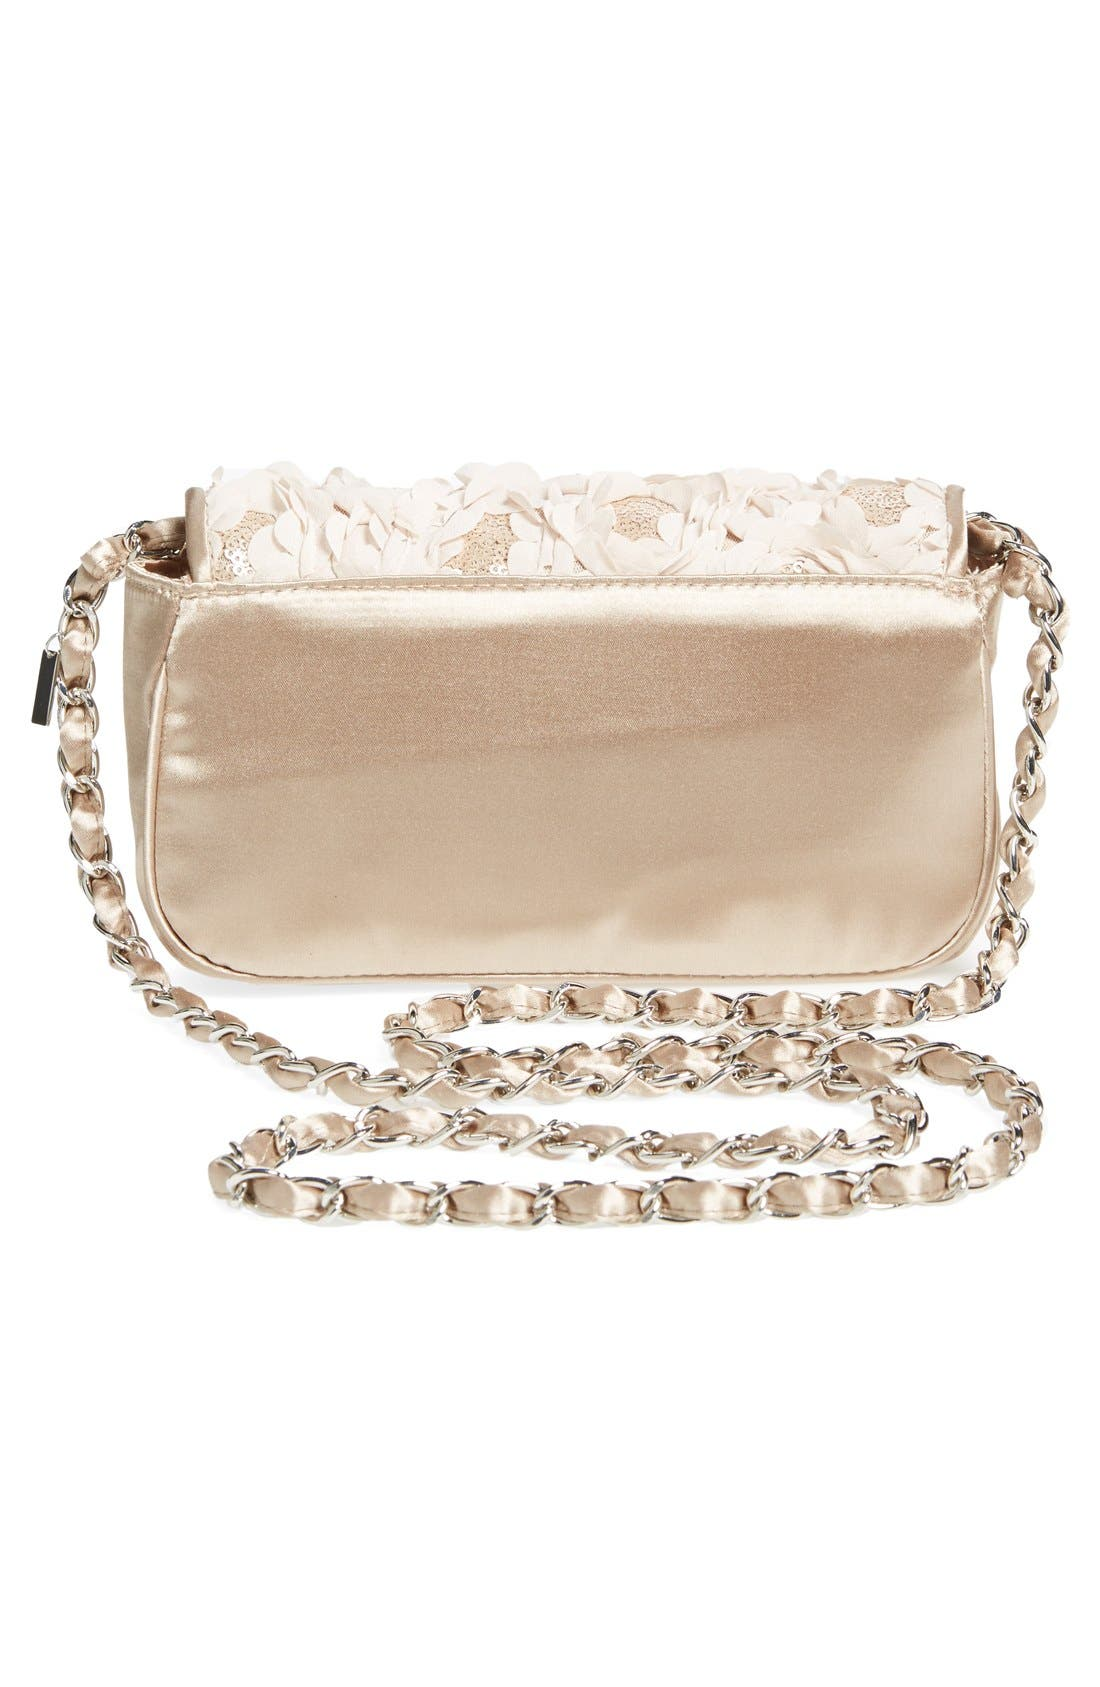 'Lassus' Satin Clutch,                             Alternate thumbnail 5, color,